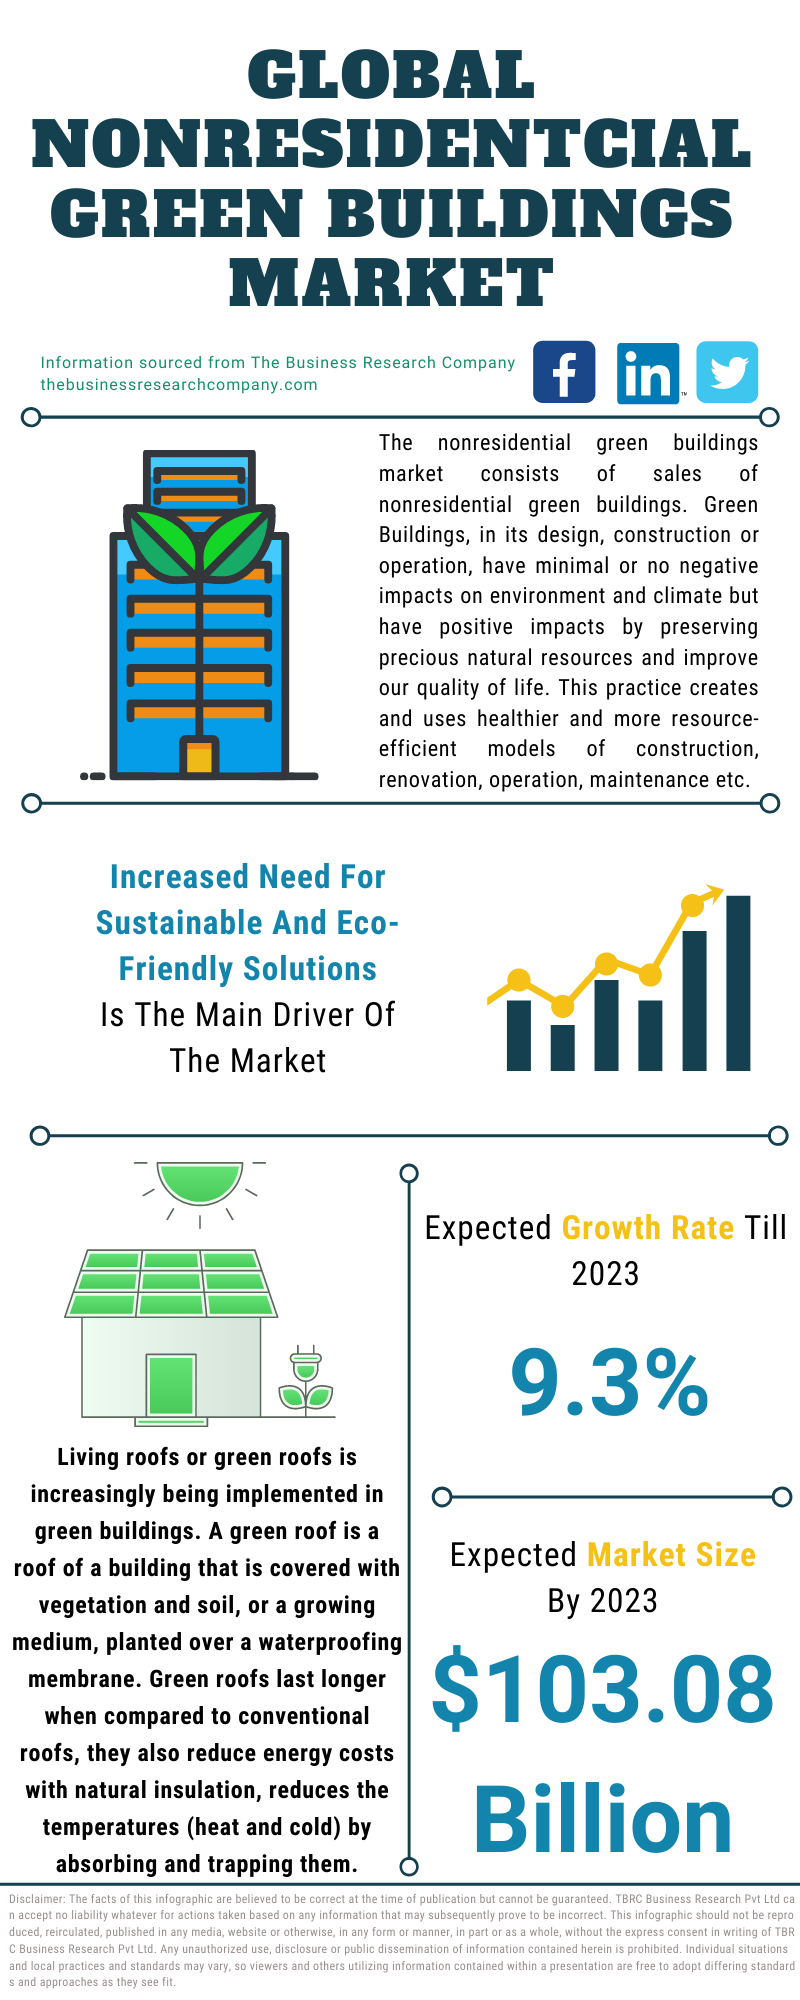 Nonresidential Green Buildings Market